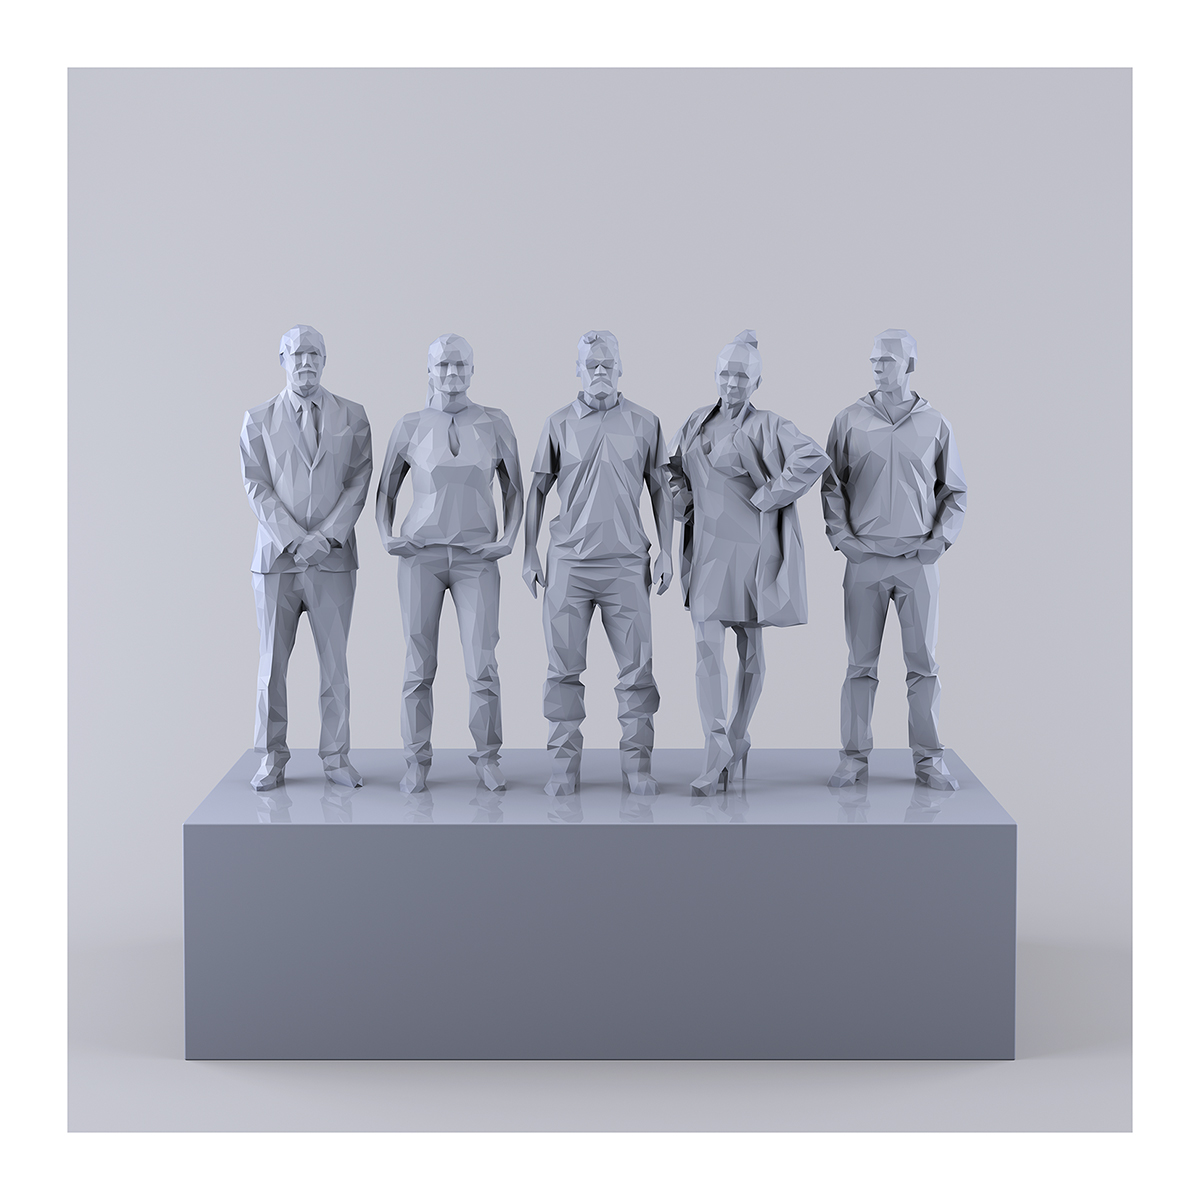 This was HomoSapiens IV 004 1 - 2019 - This was HomoSapiens. IV. (LowPoly People)